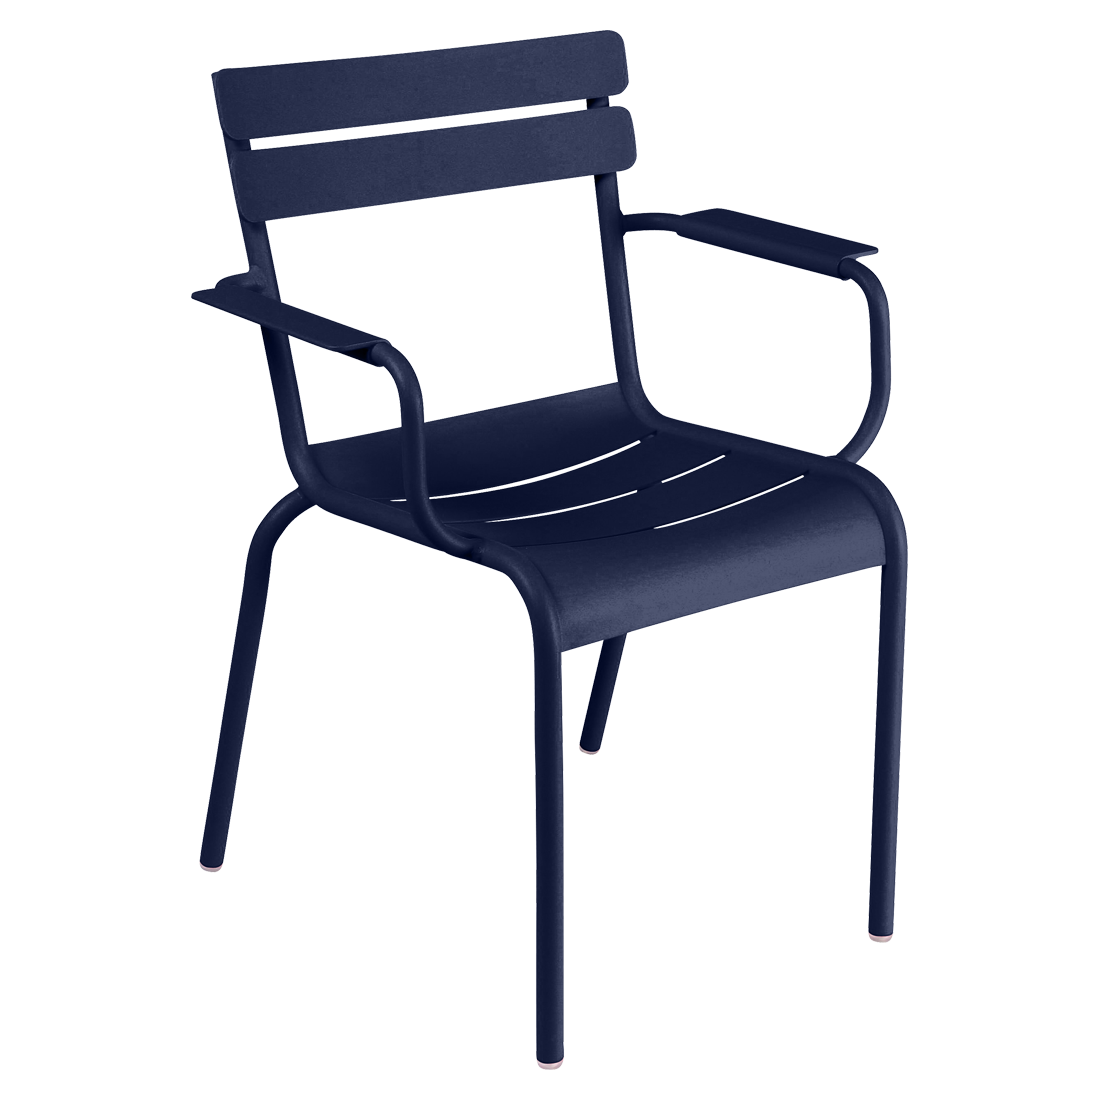 chaise metal, chaise fermob, mobilier terrasse, mobilier restaurant, chaise restaurant, chaise bleu, chaise restaurant